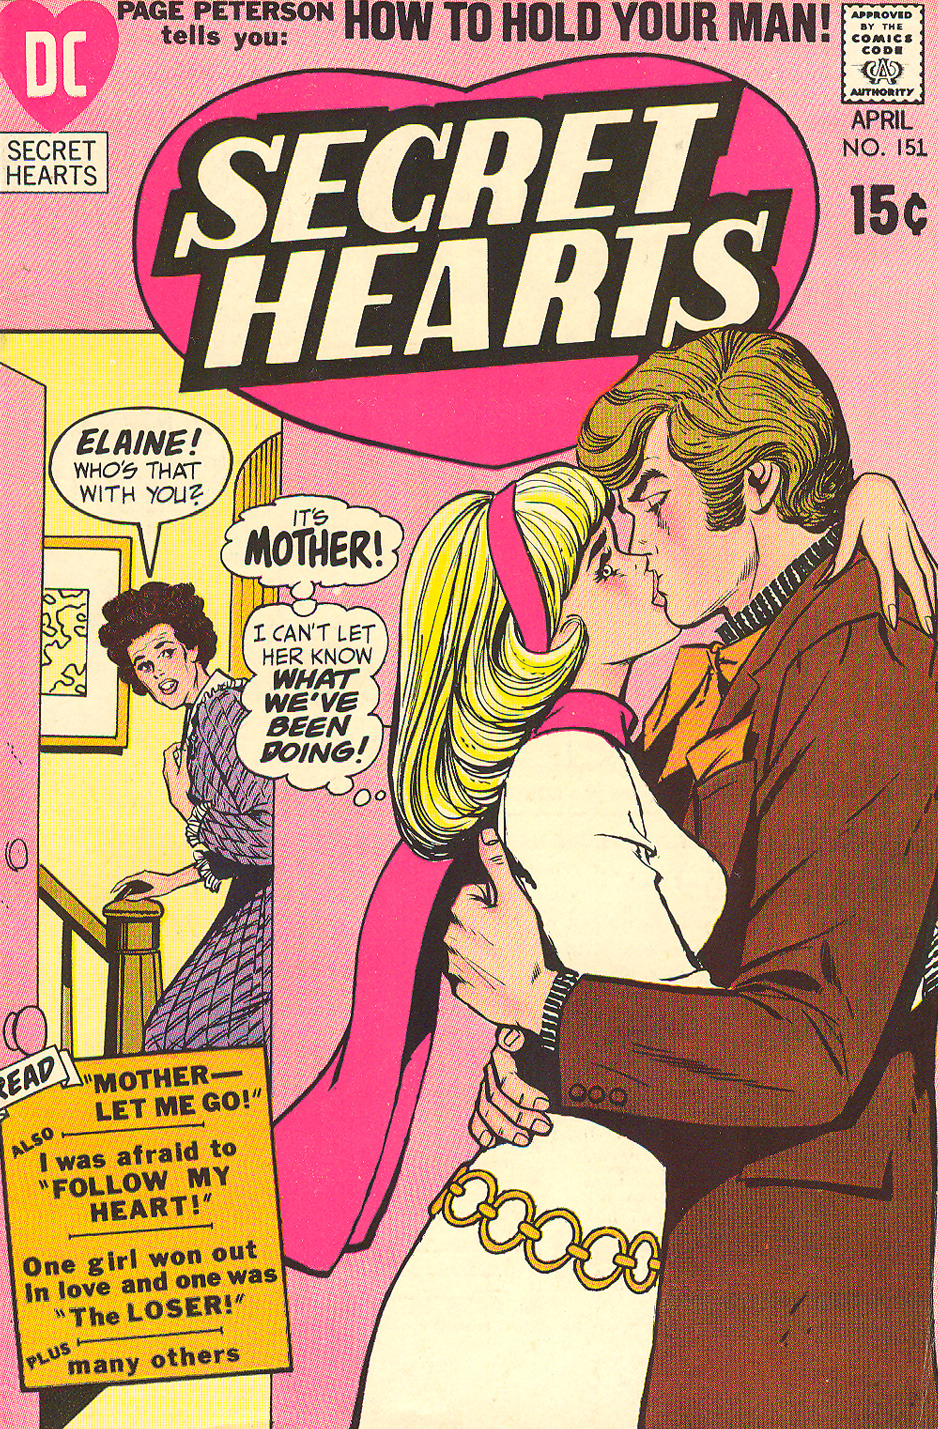 Cover of  Secret Hearts  #151 by Werner Roth and Vince Colletta